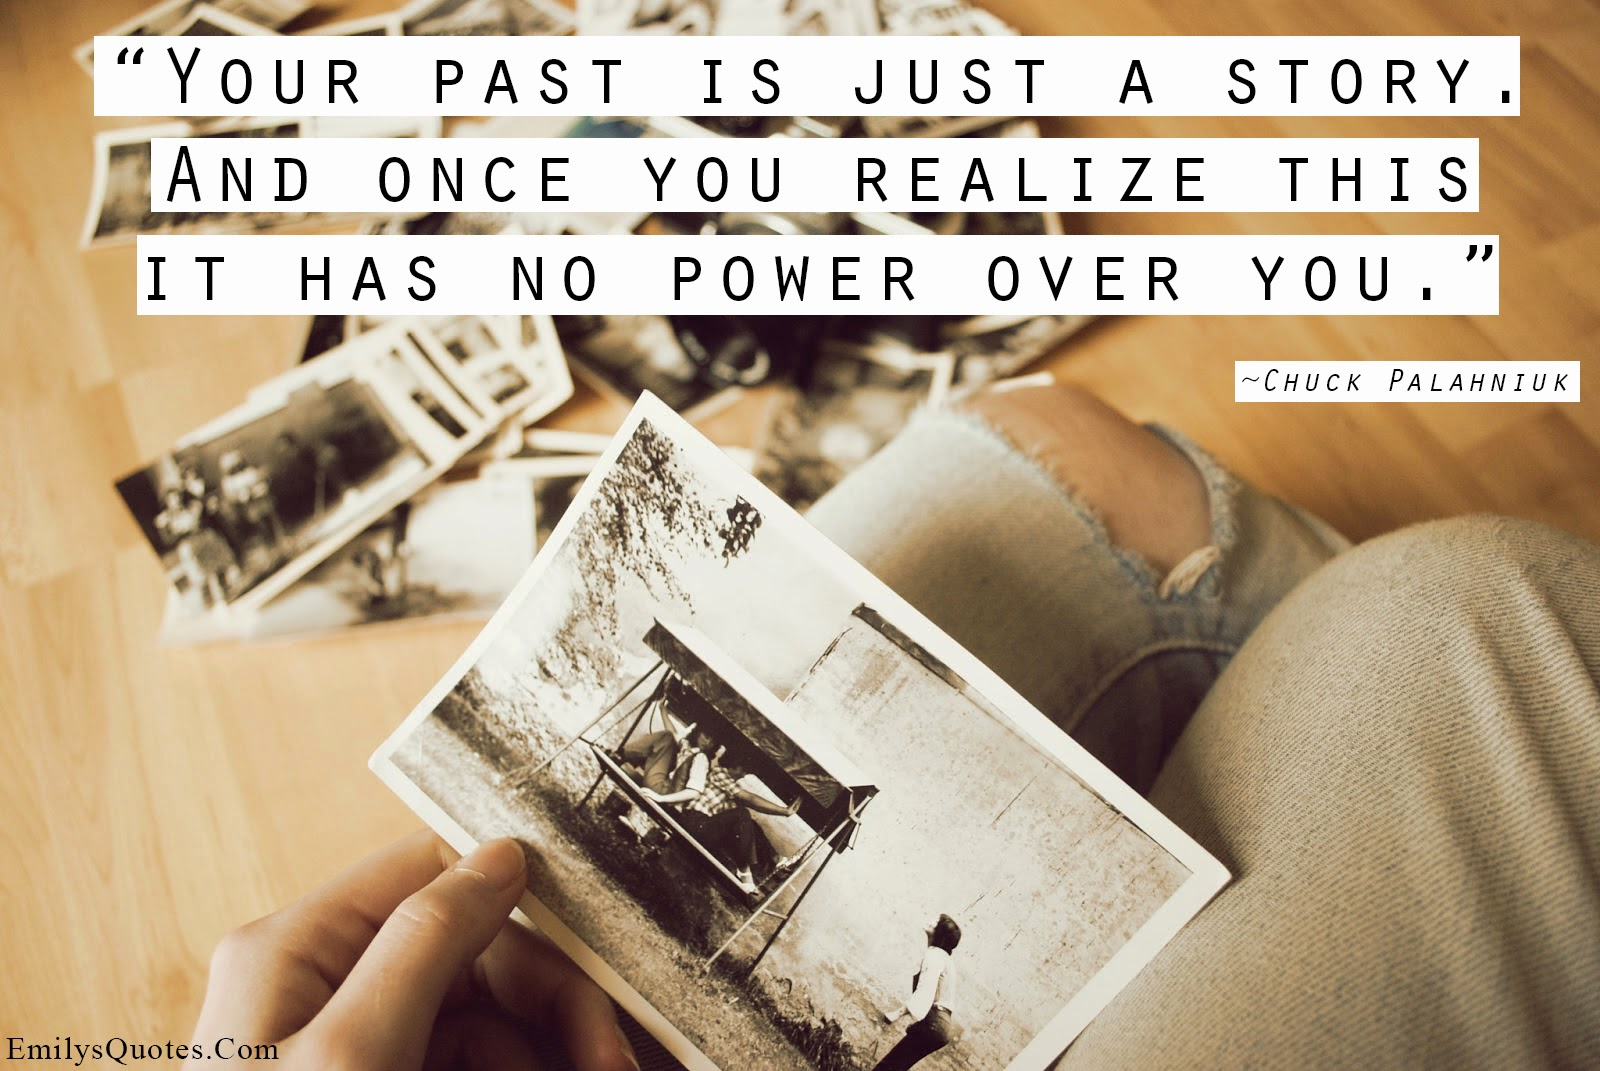 Quote About Your Past: Lifes Shiny Pretty Things